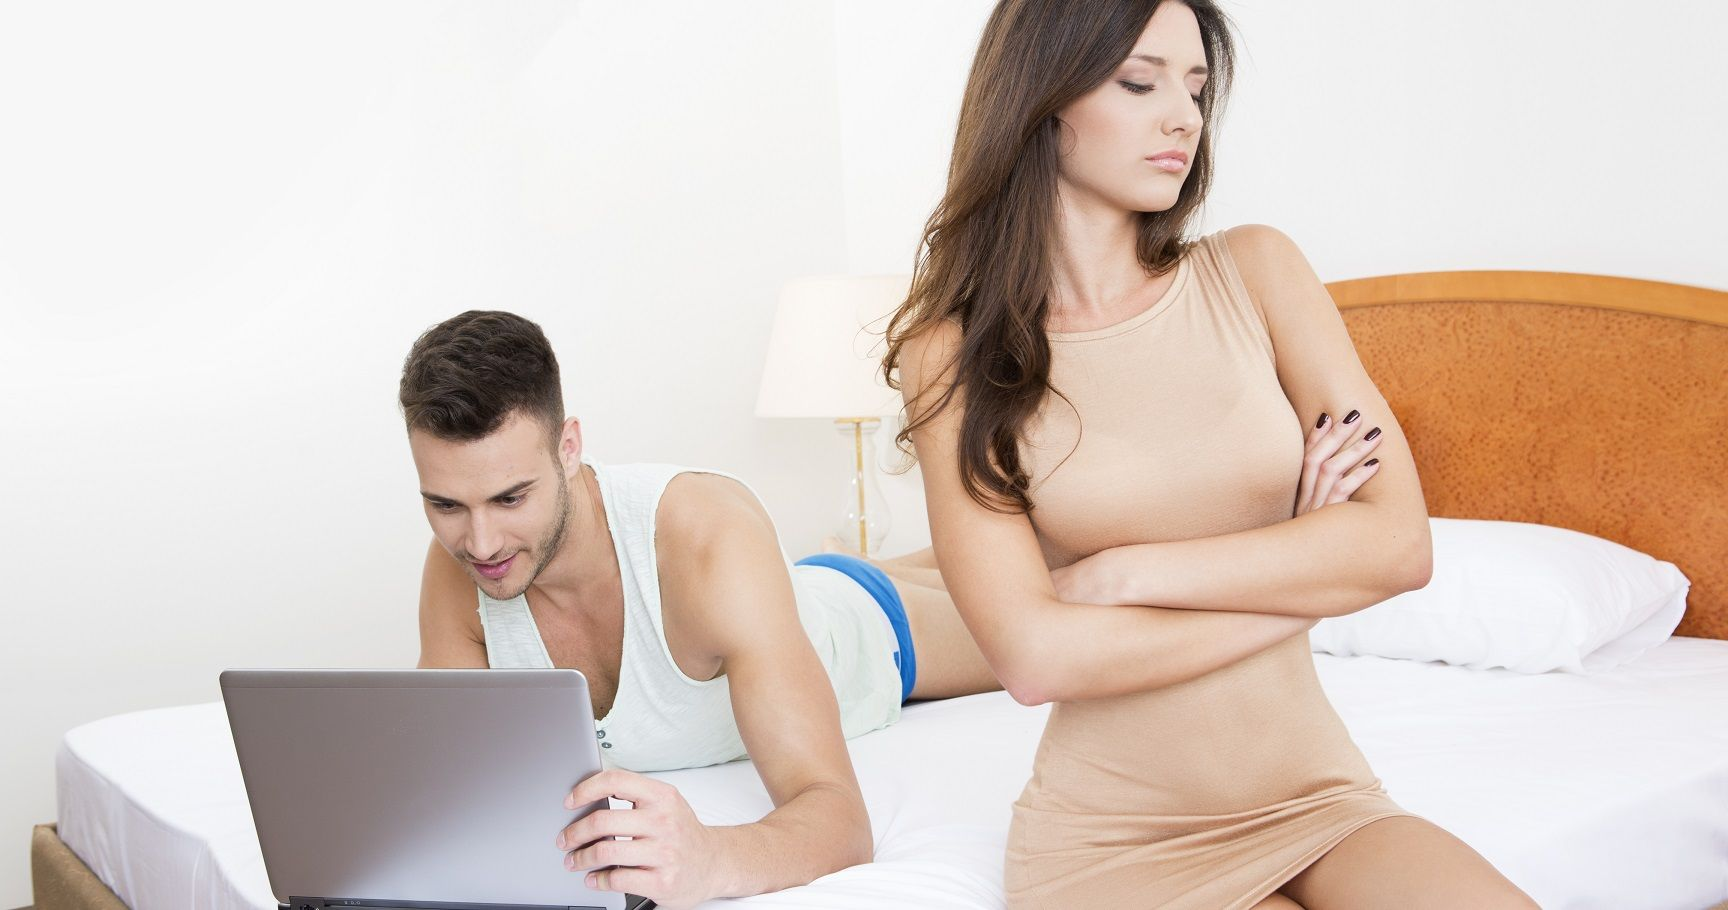 10 Common Mistakes You've Probably Experienced in the Bedroom